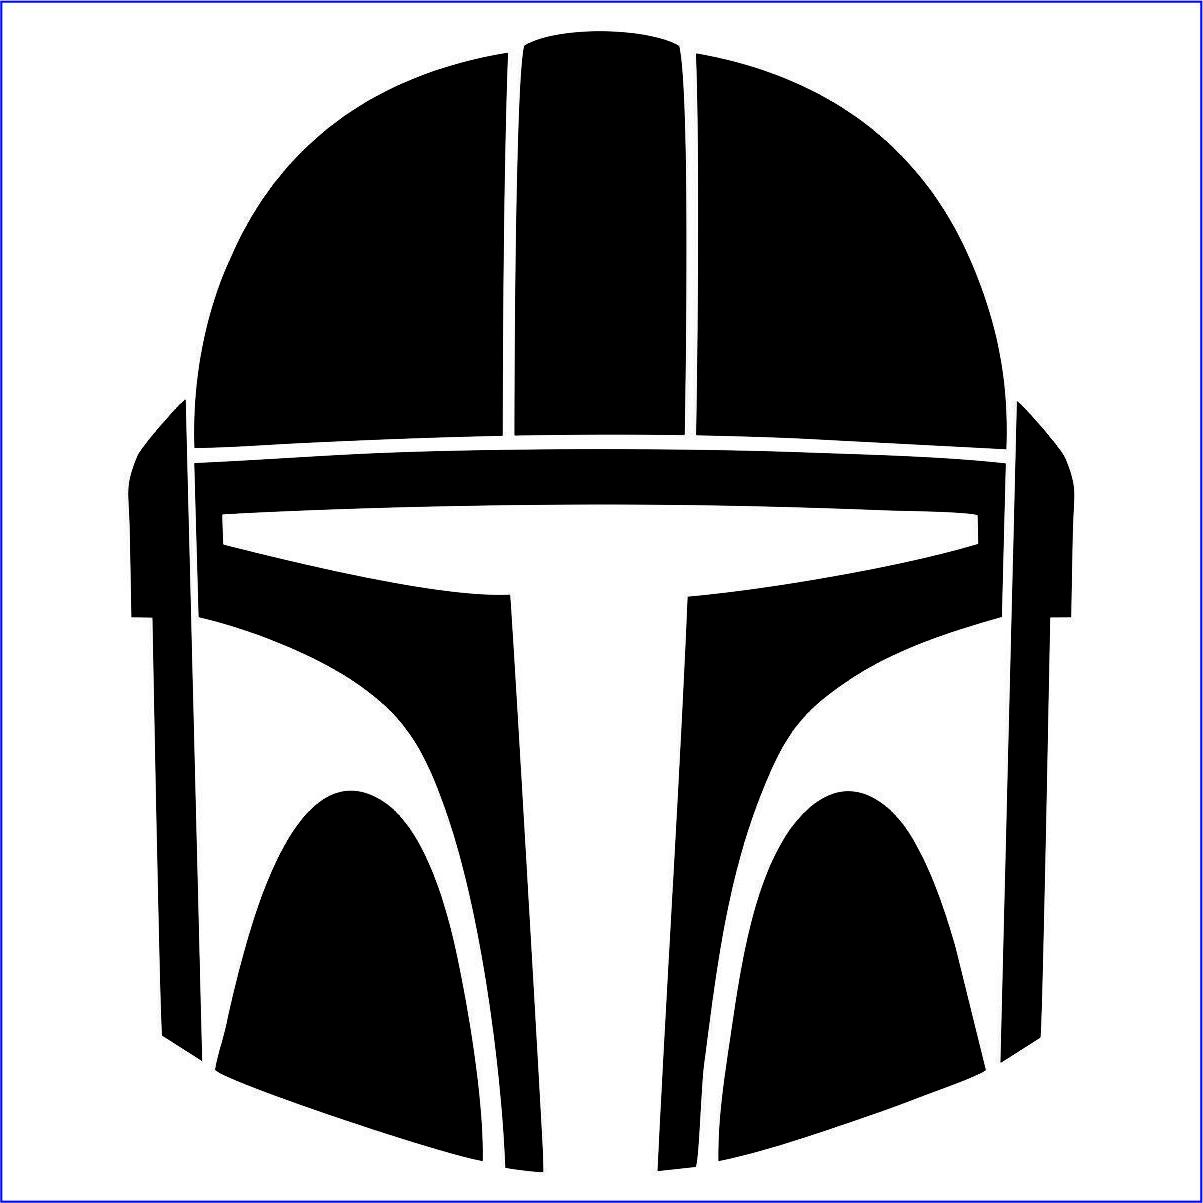 The Decal Sticker & Size Star Wars,